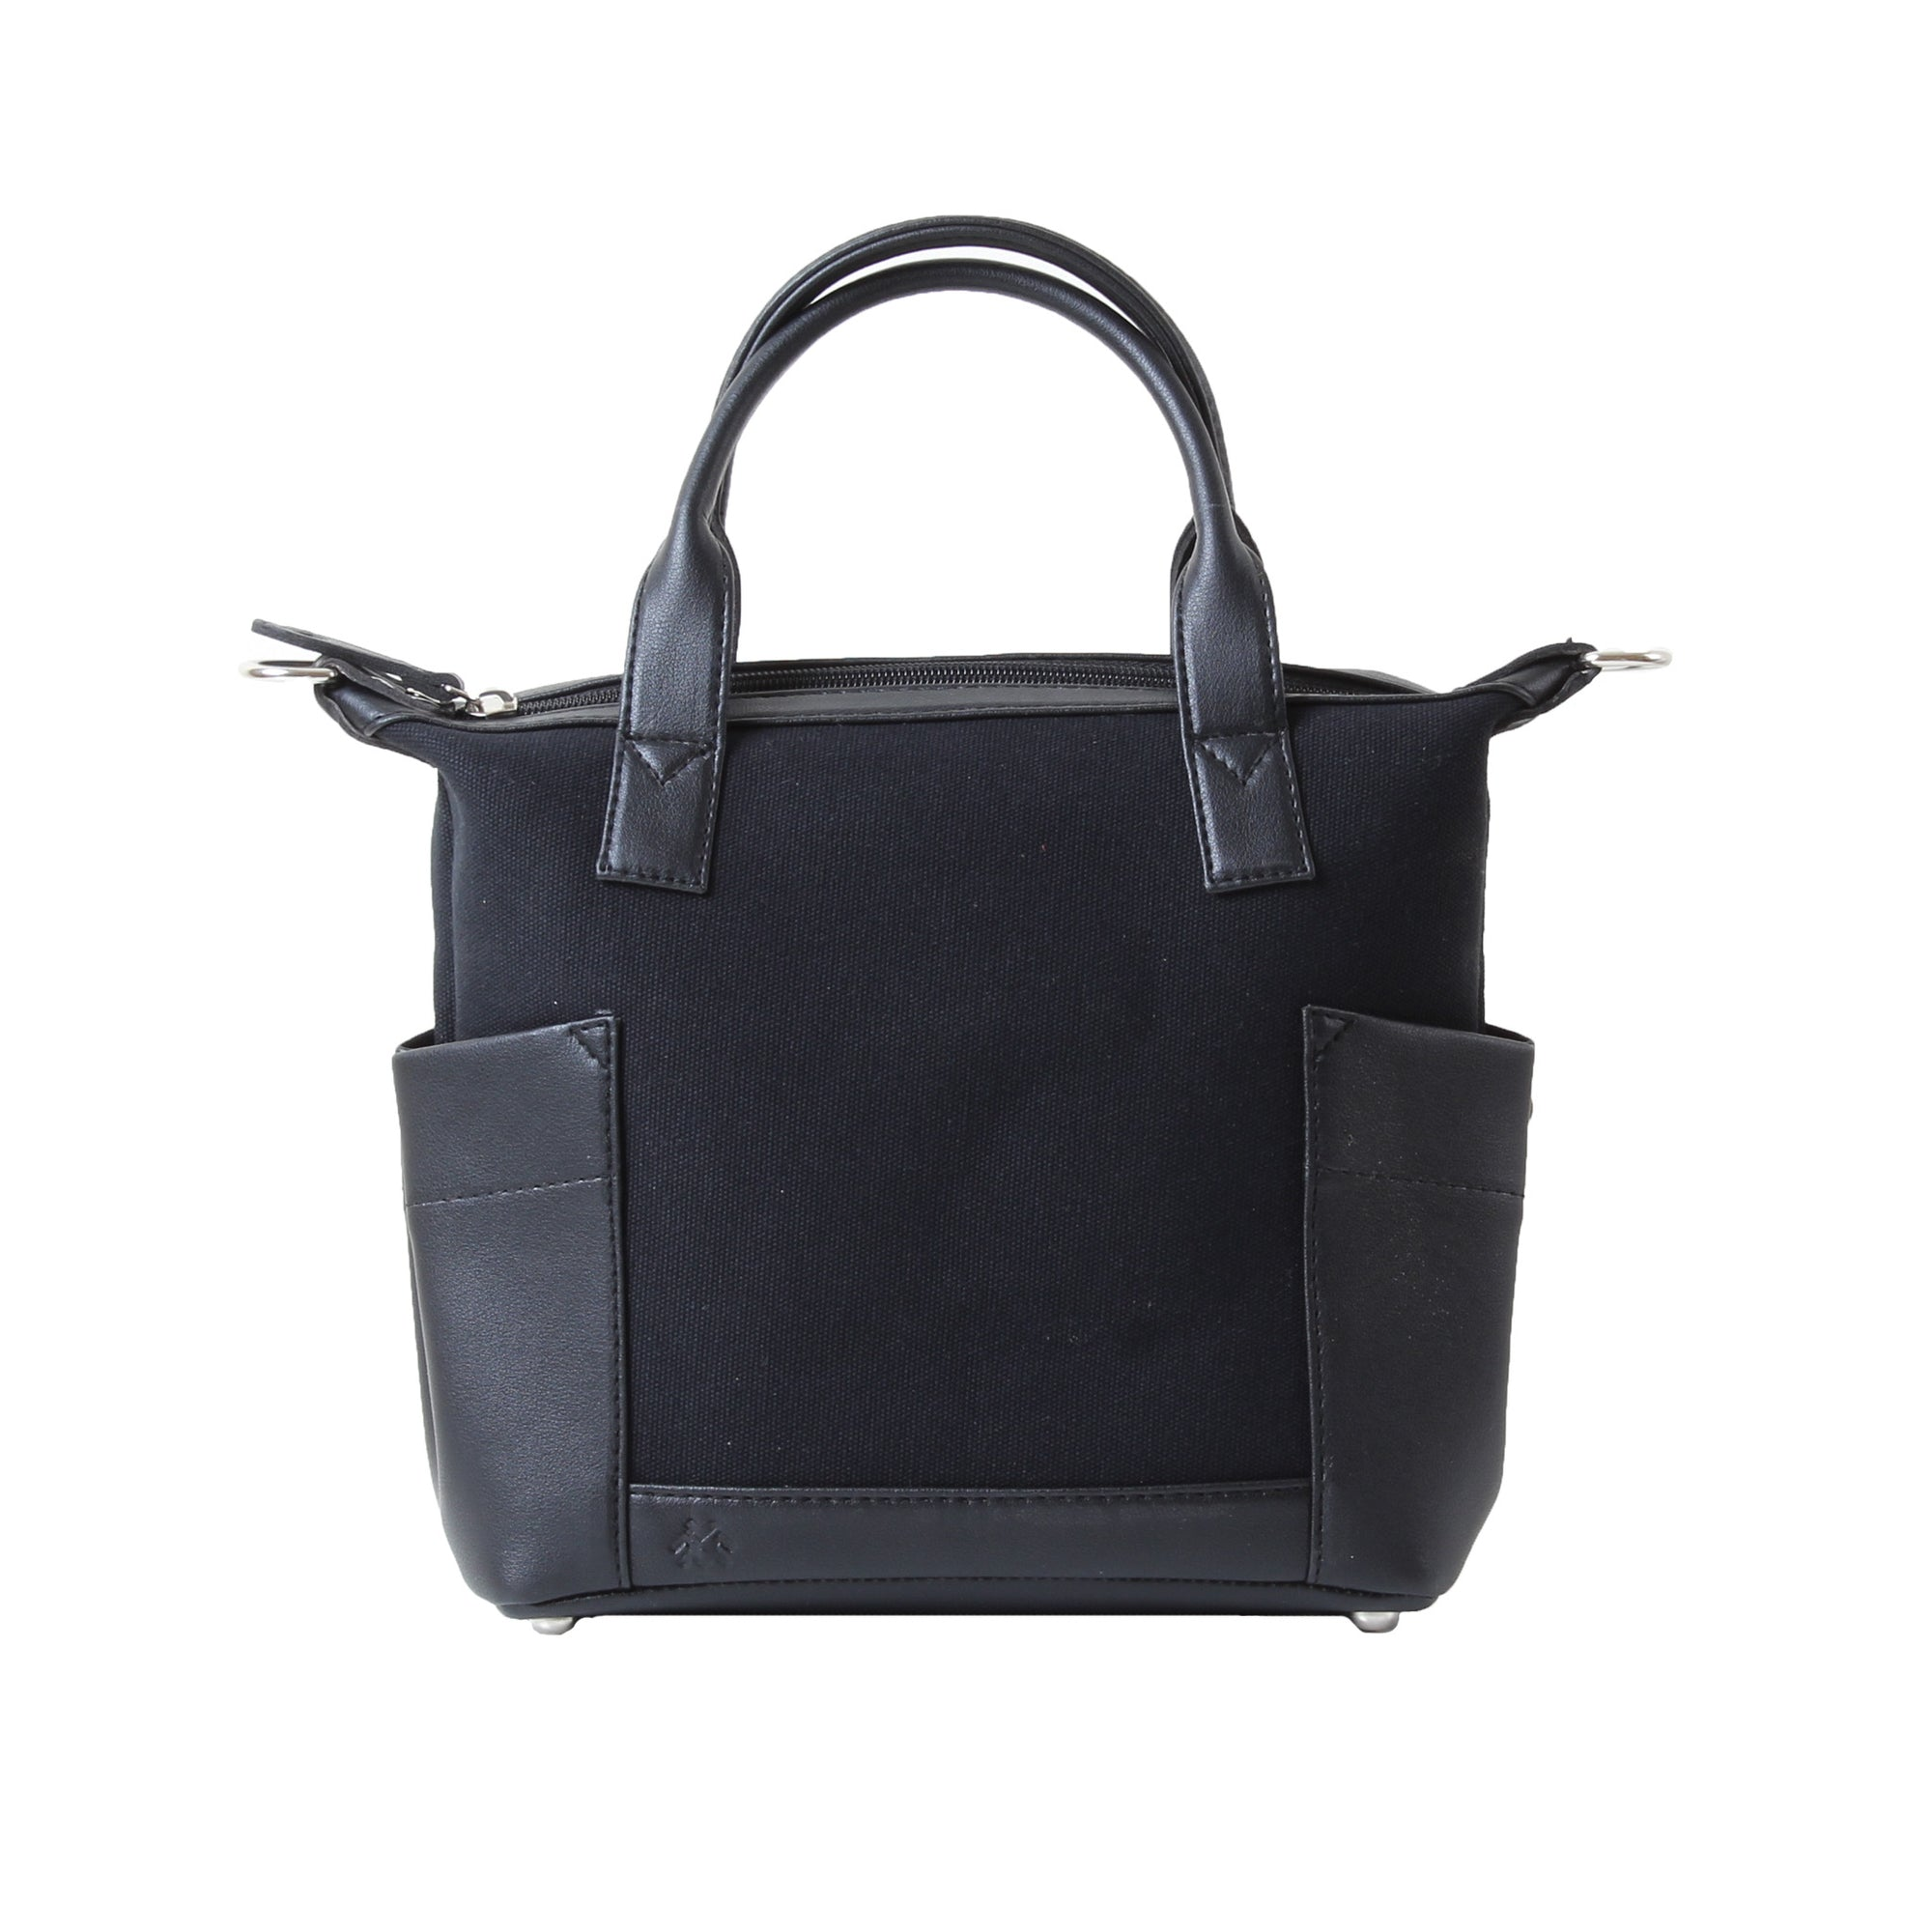 Micro City Bag Black